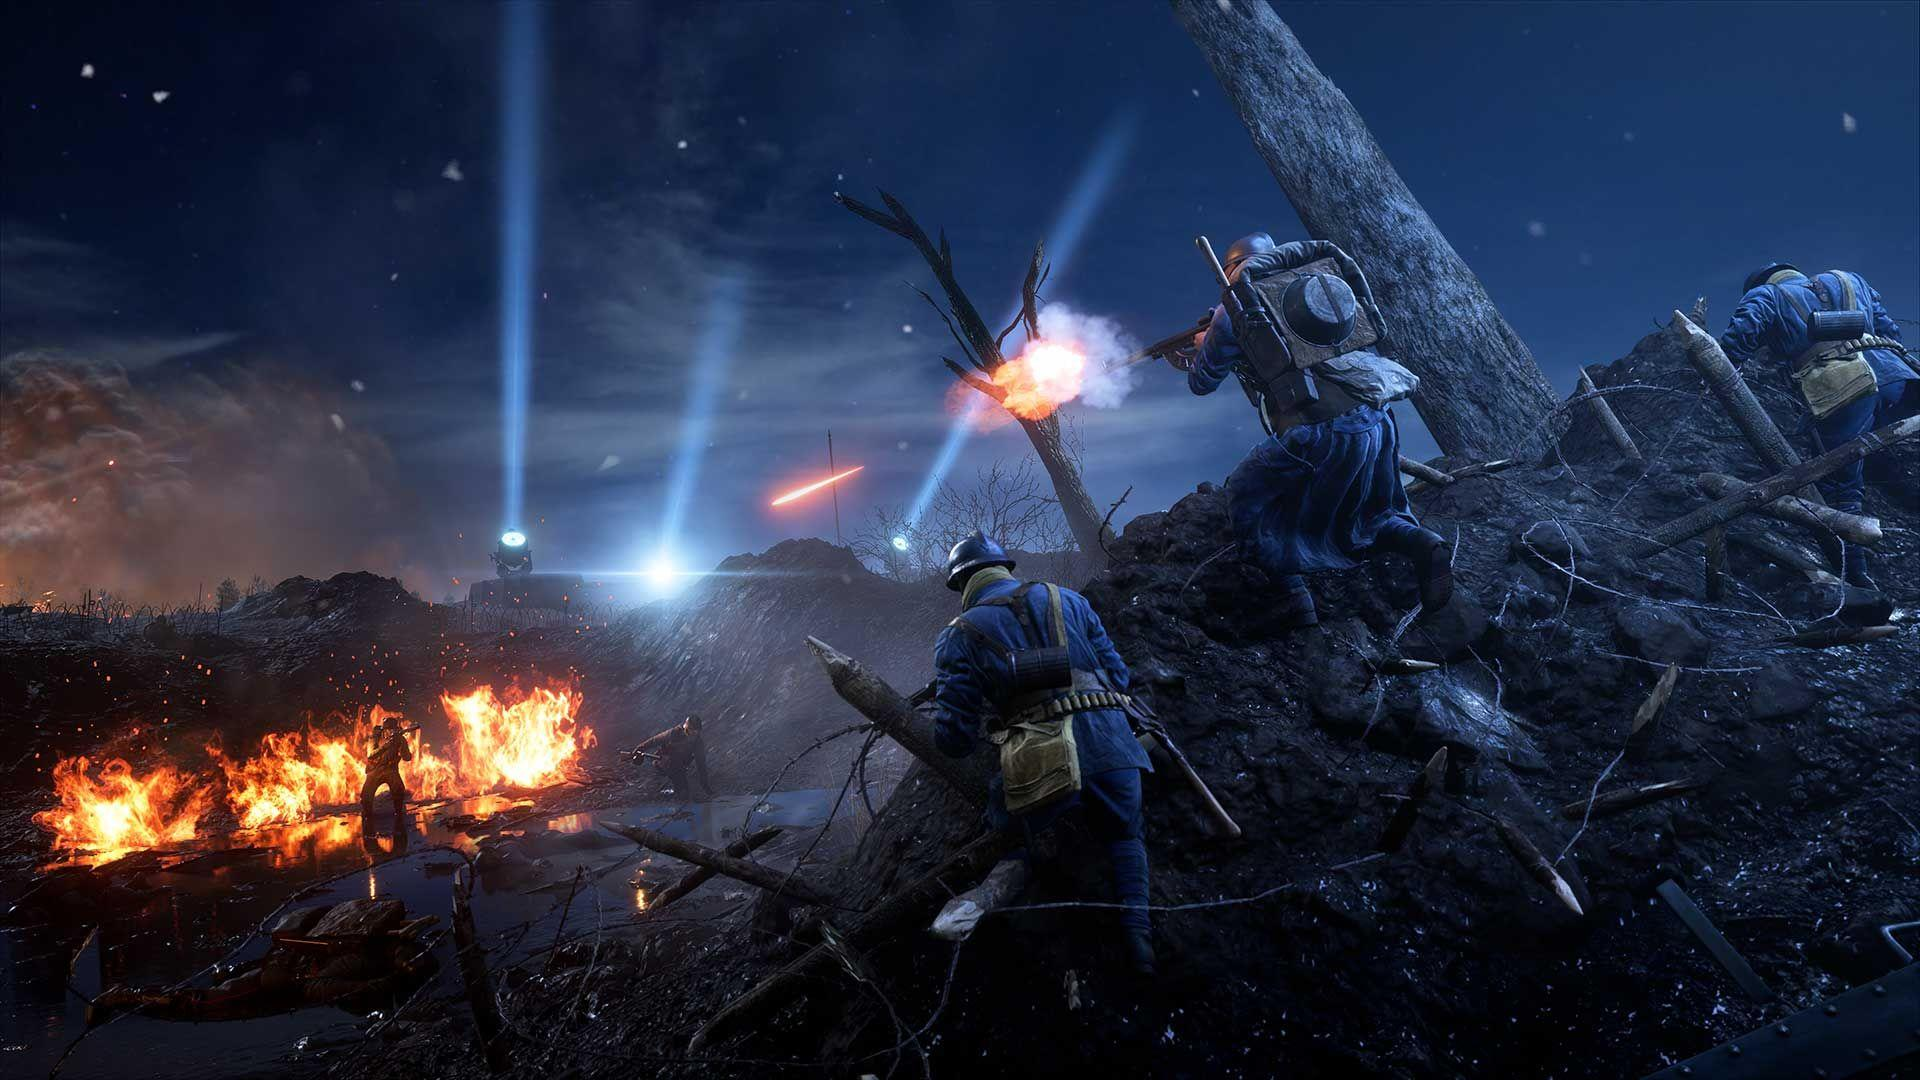 Battlefield 1 Dlc They Shall Not Pass Goes Free For A Short Time